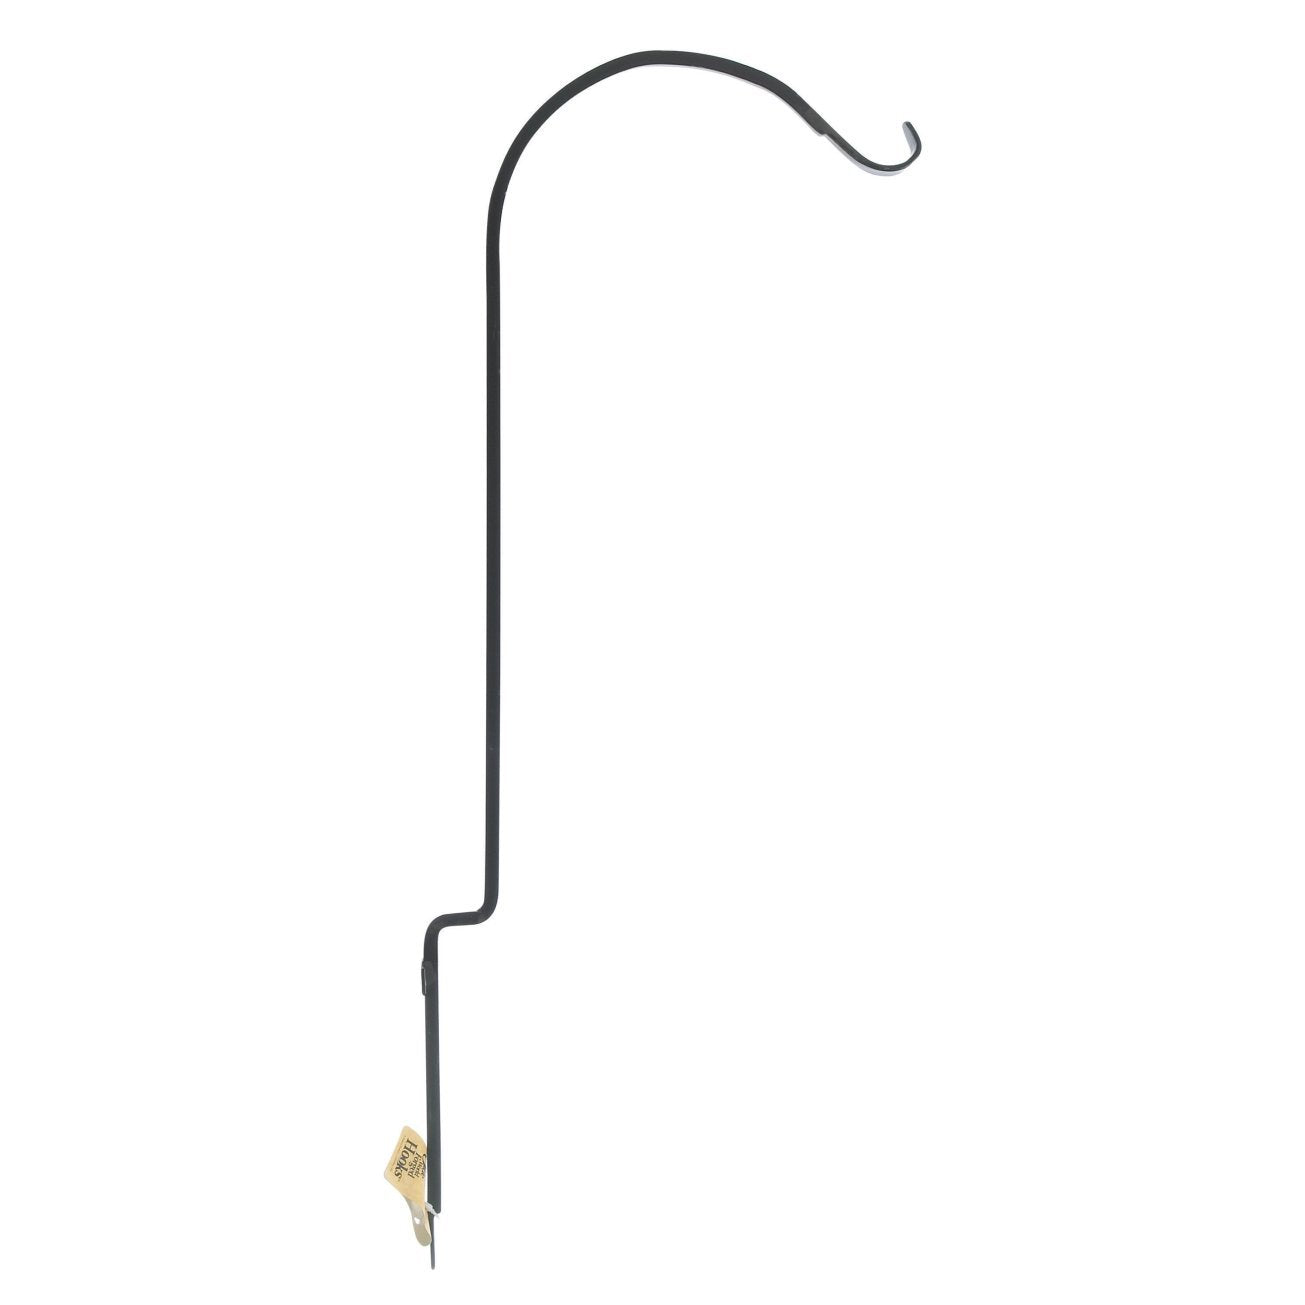 "Panacea 89436 Forged Curved Hook, 36"", Black"